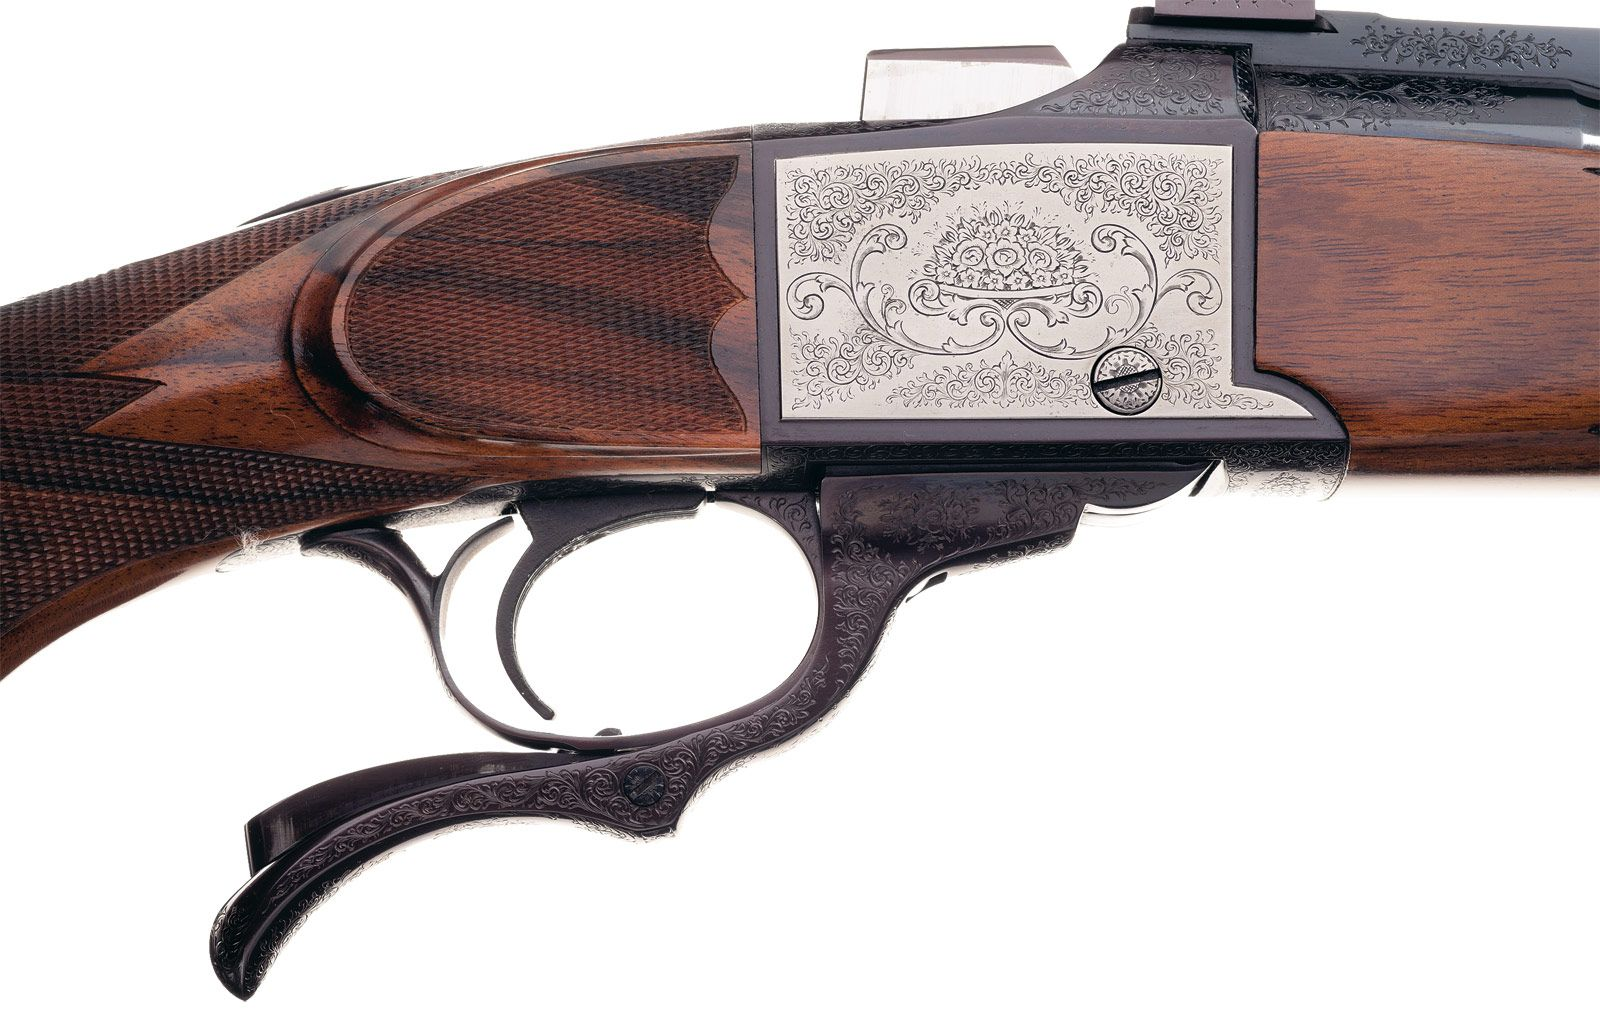 Dating ruger firearms - The Firing Line Forums